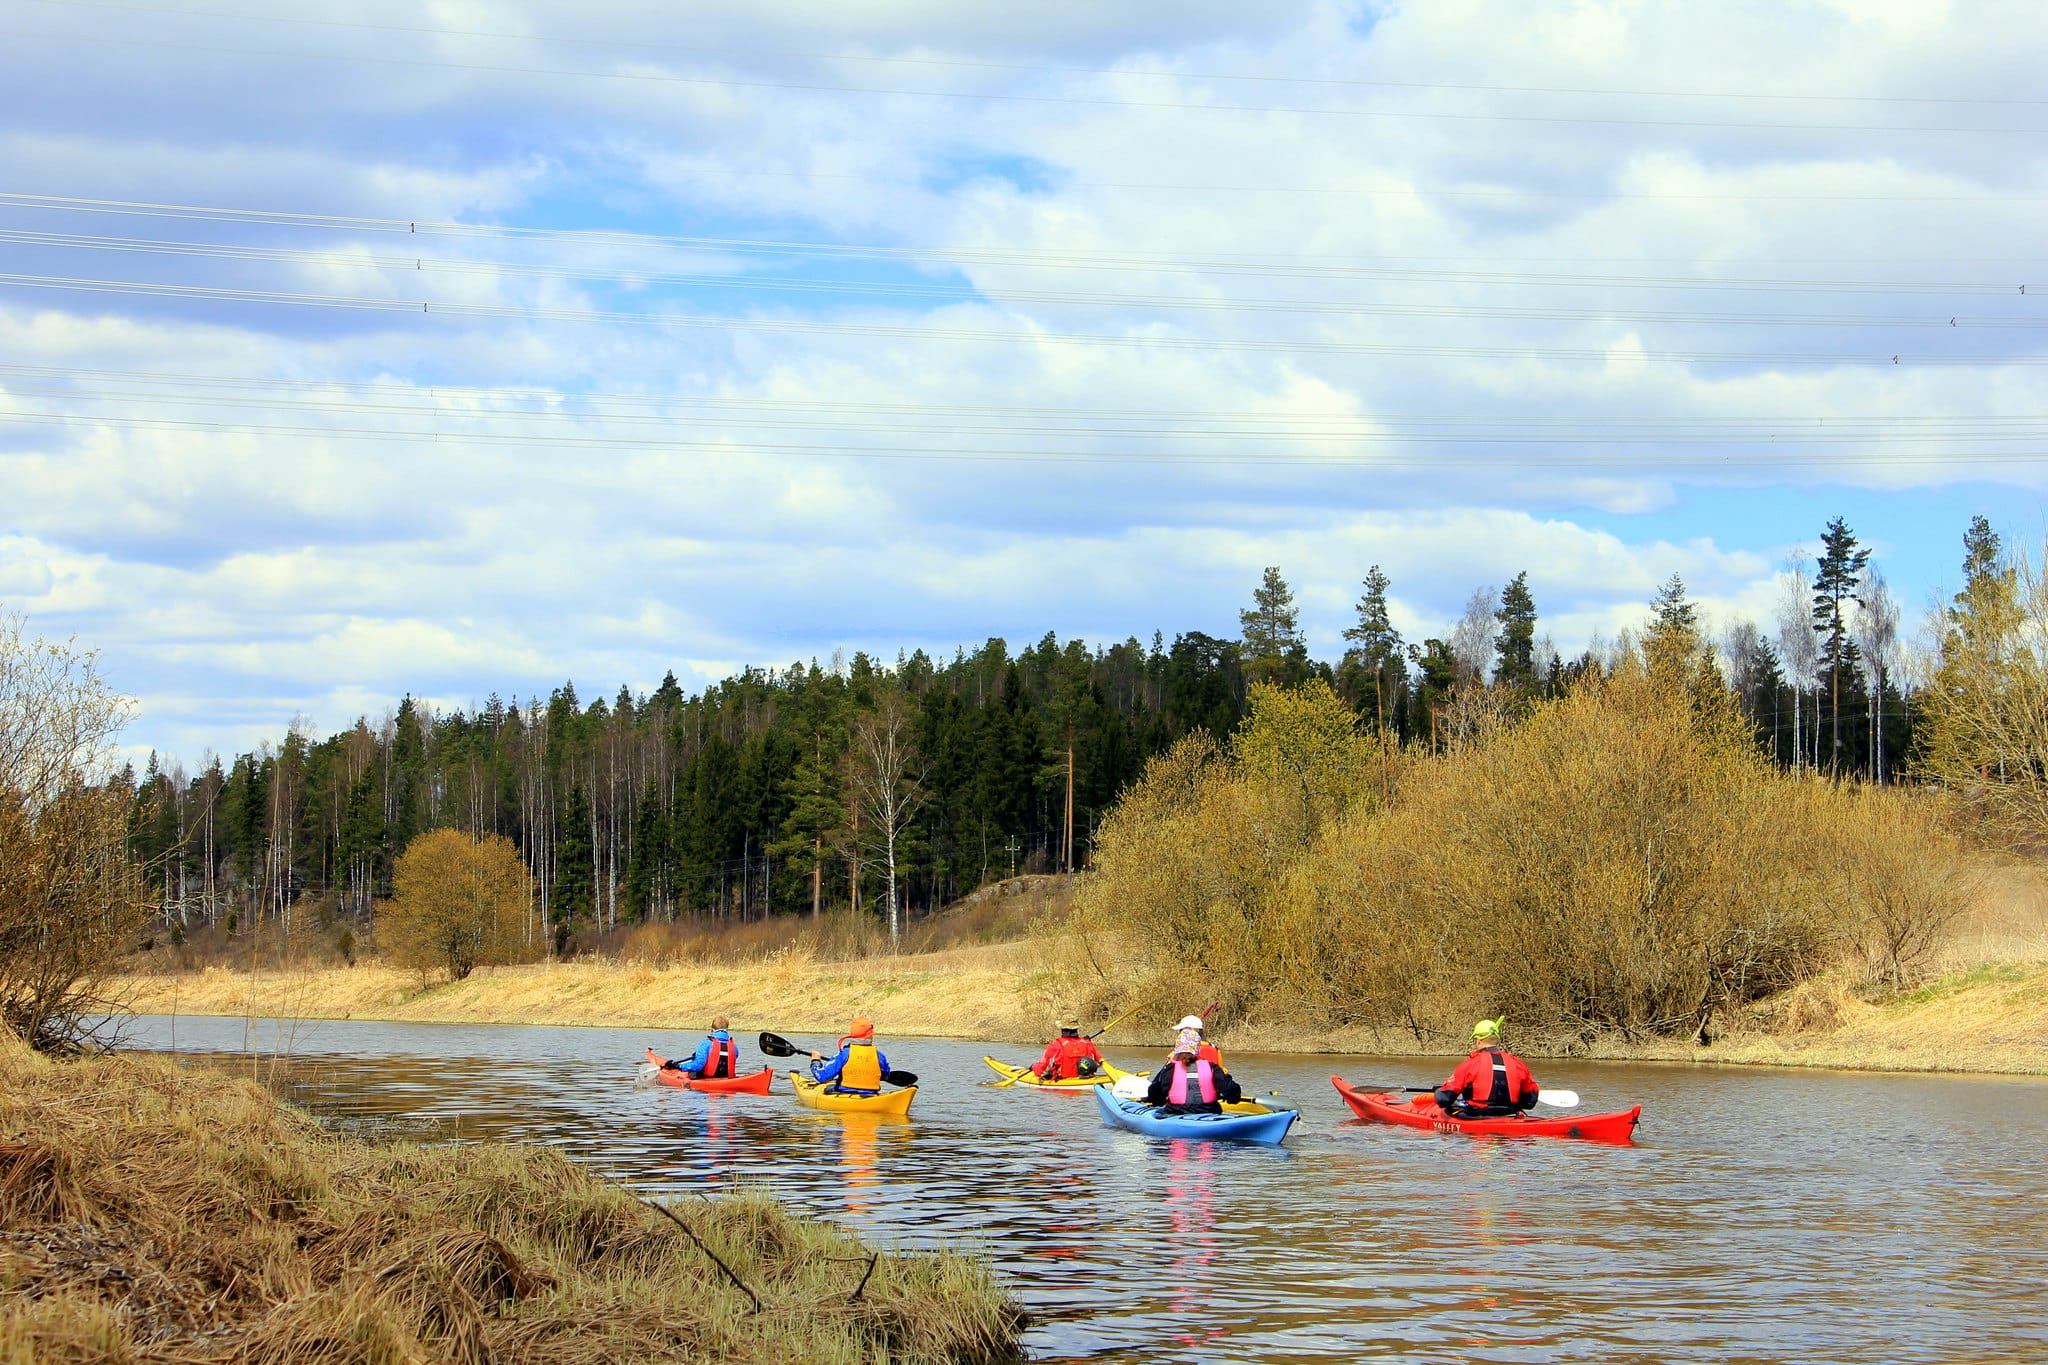 Canoeing in Finland means relaxing, because here you can enjoy the scent of pine trees and the sound of chirping birds for hours on end, without anyone disturbing you.